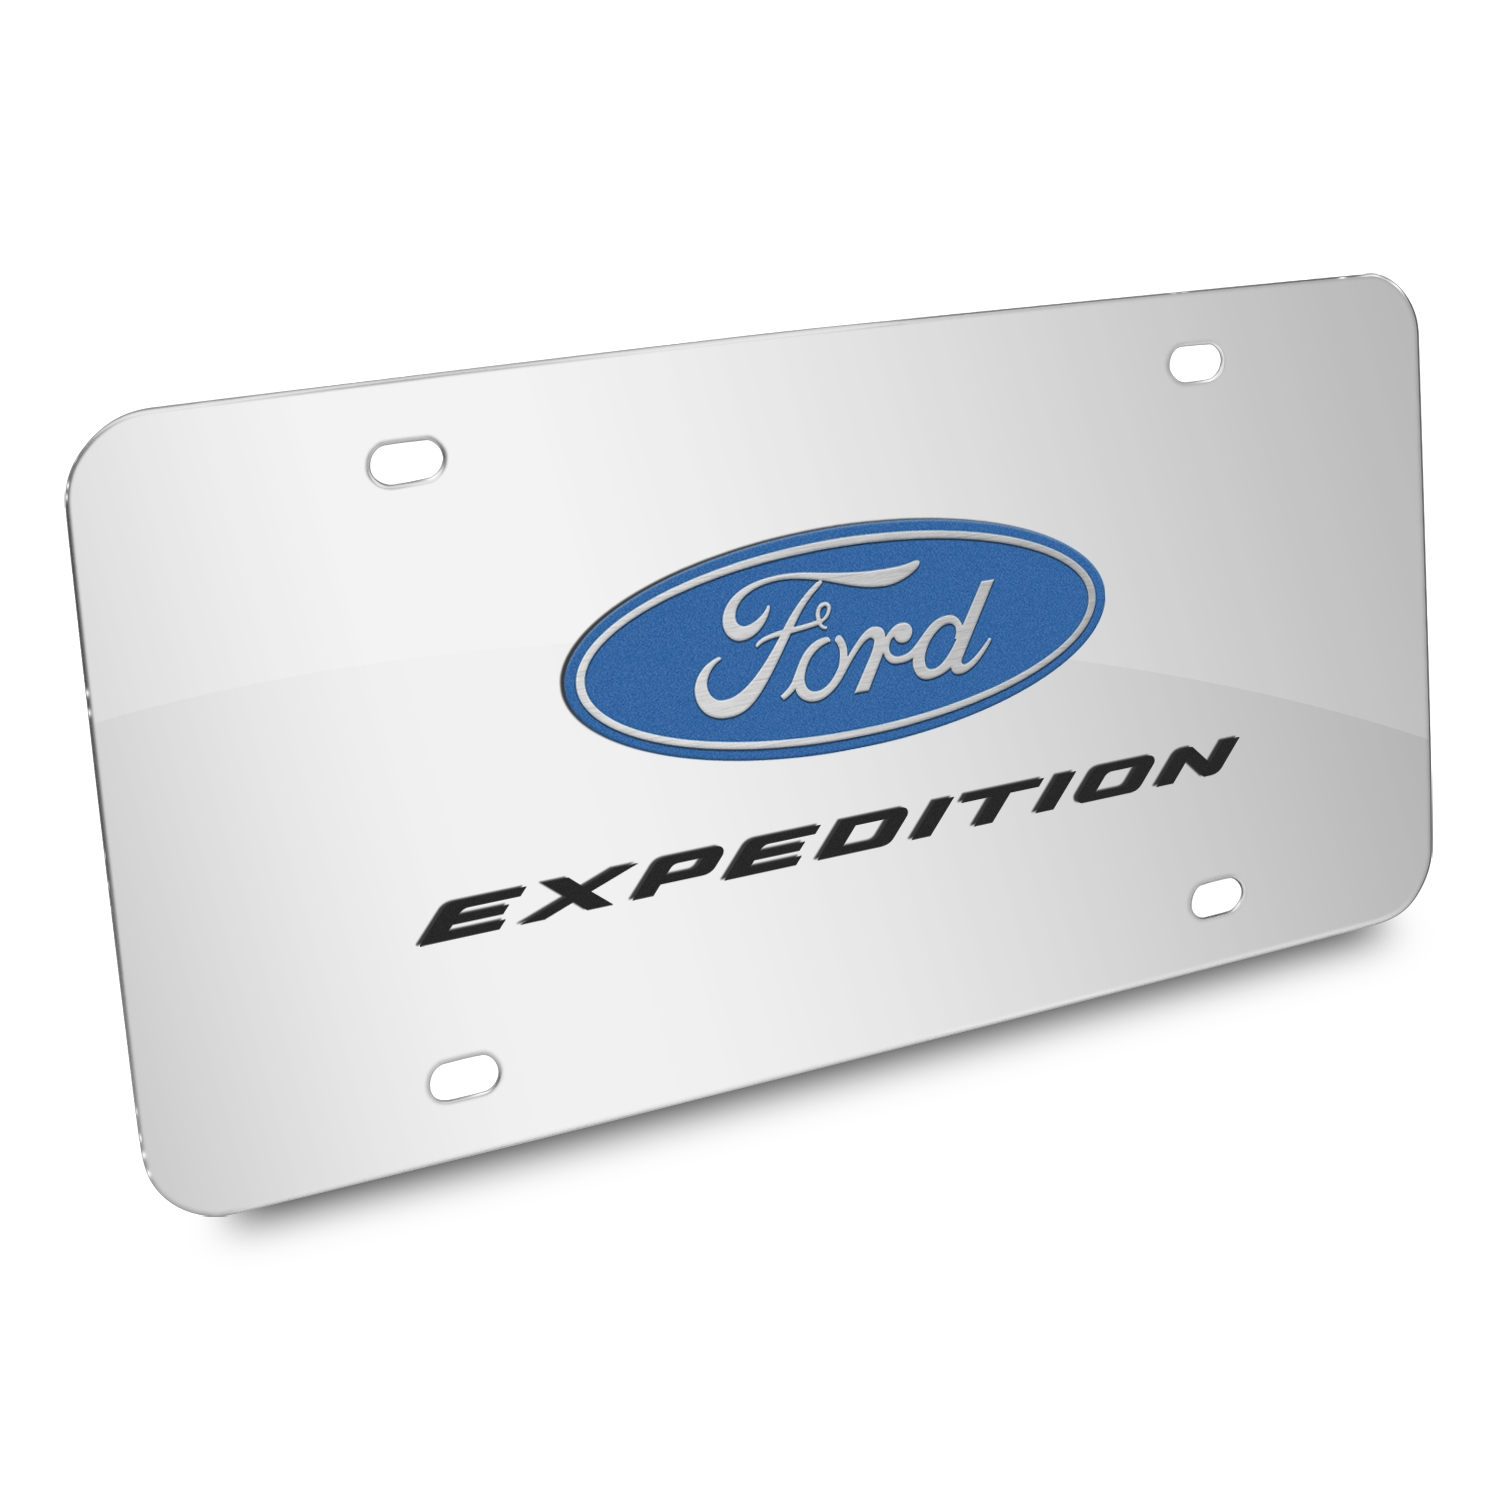 Ford Expedition 3D Dual Logo Mirror Chrome Stainless Steel License Plate